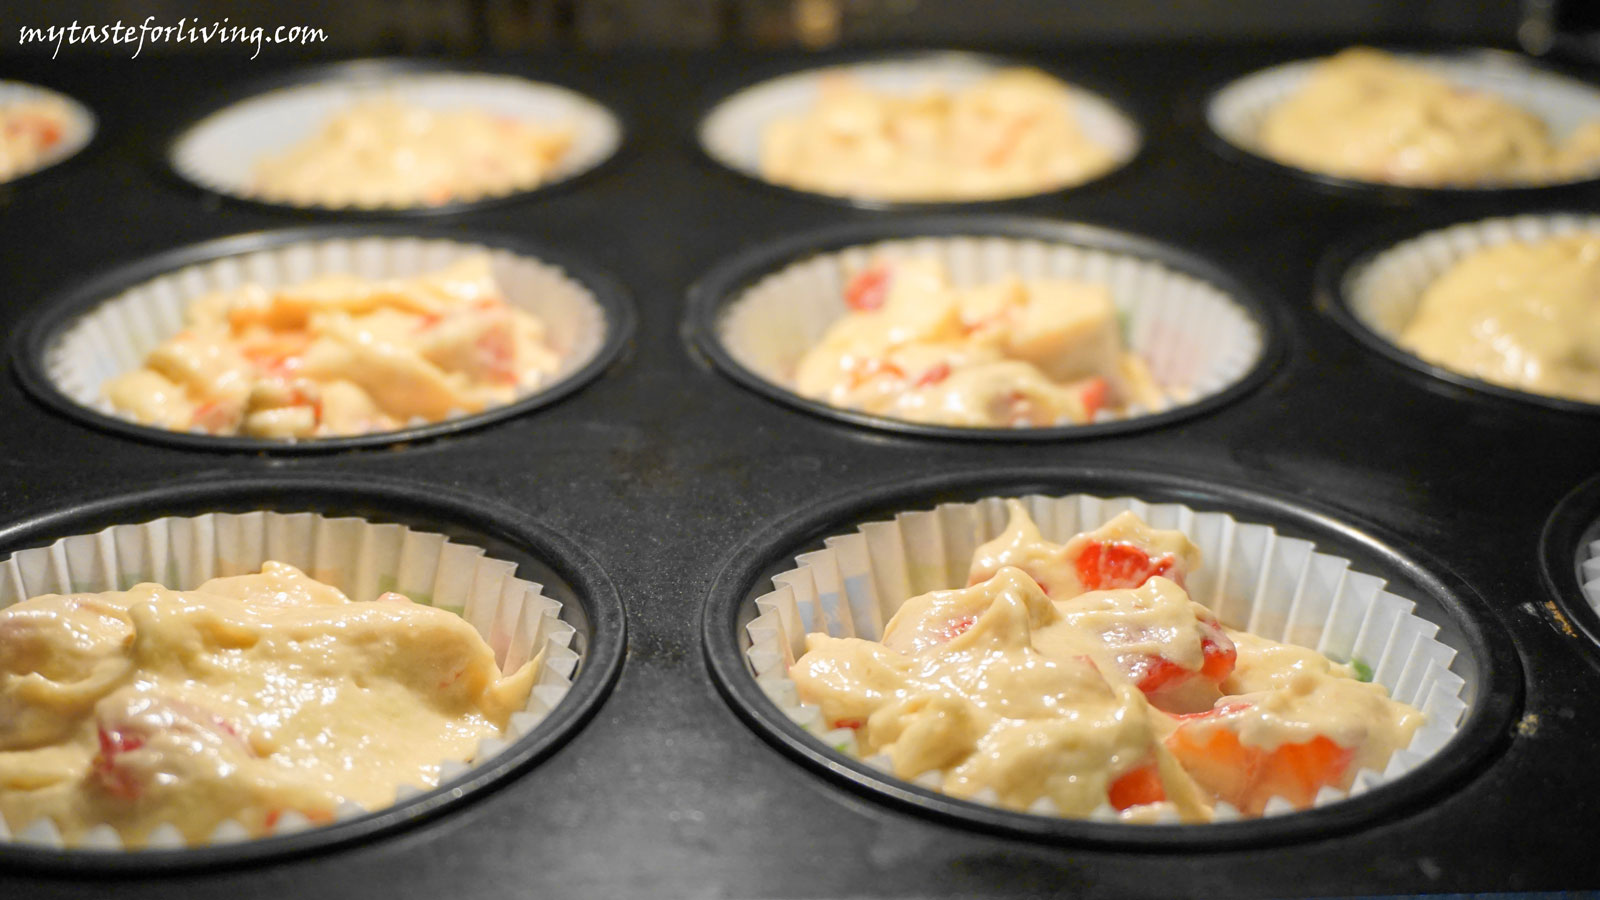 Muffins with strawberries and banana - delicious, soft, appetizing and satiating!